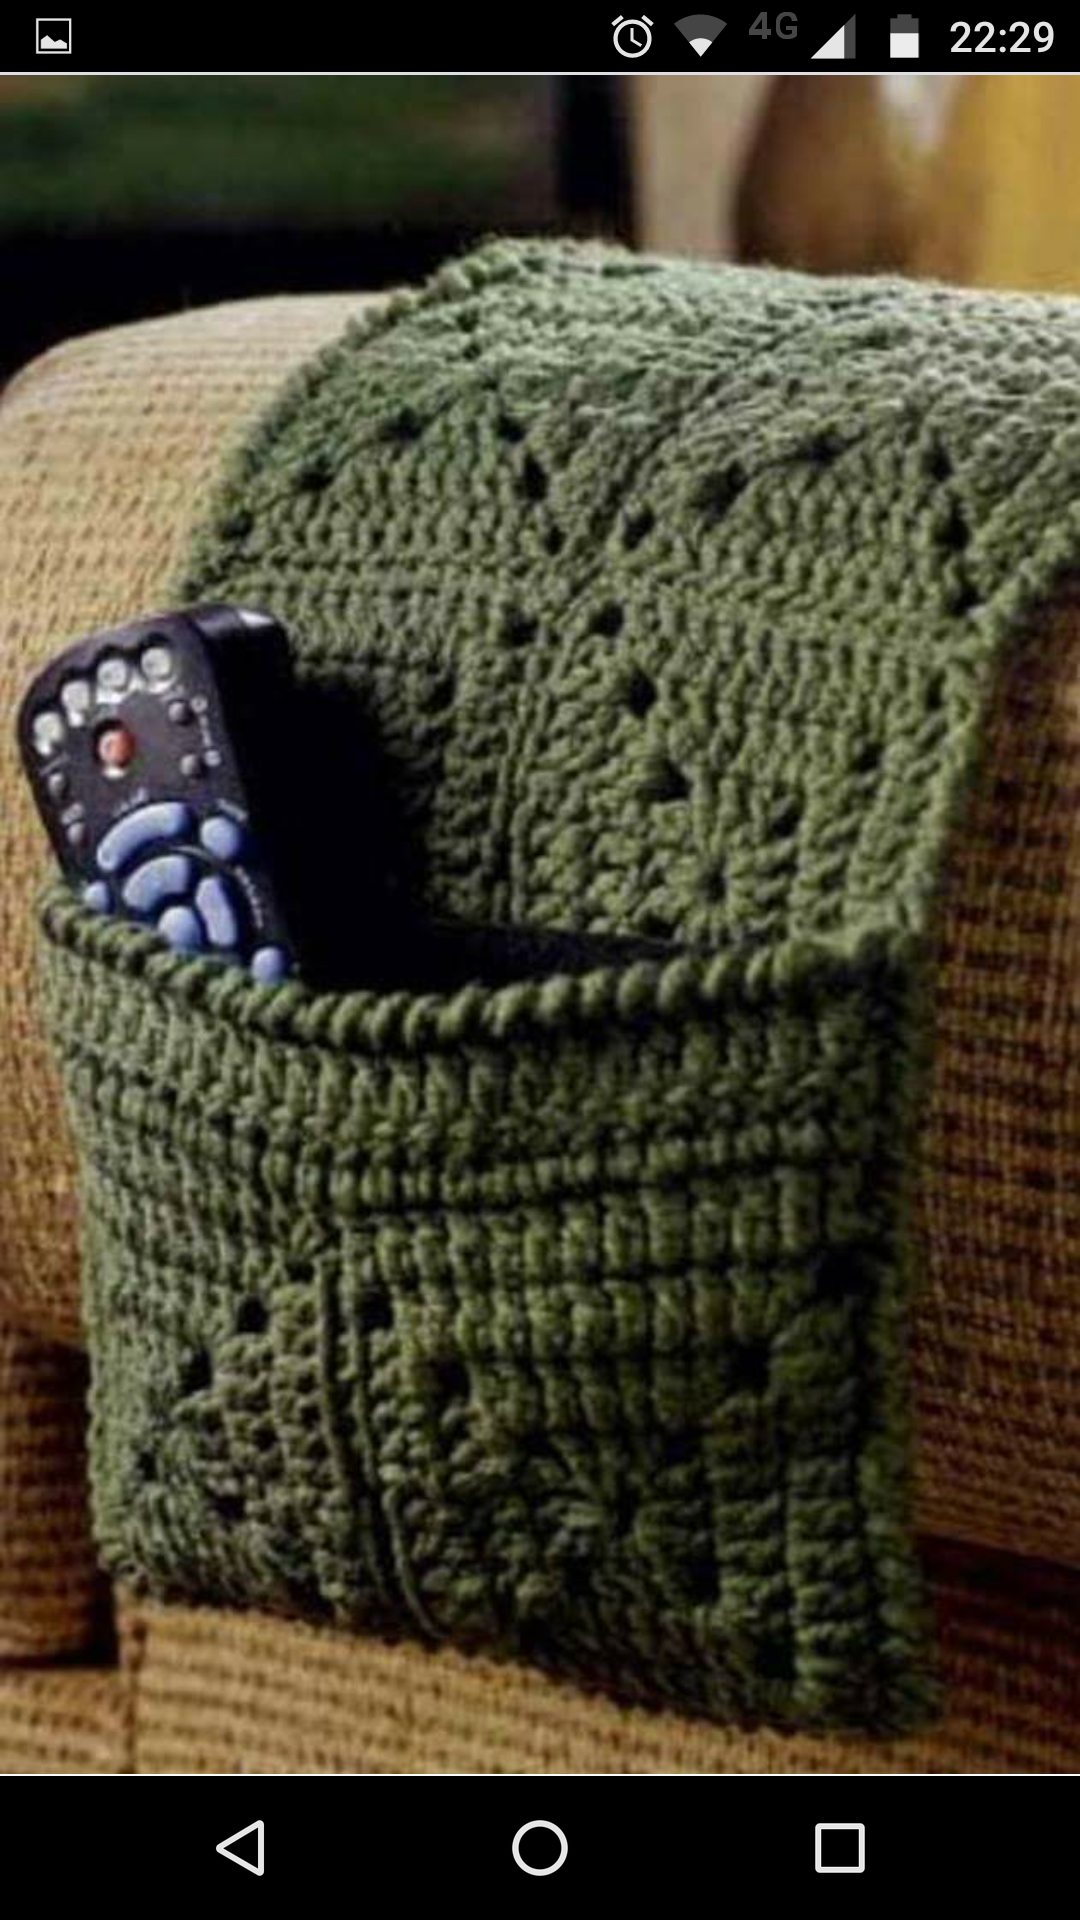 Remote holder coaster set tissue cover crochet pattern & Arm Chair Caddy - Foter